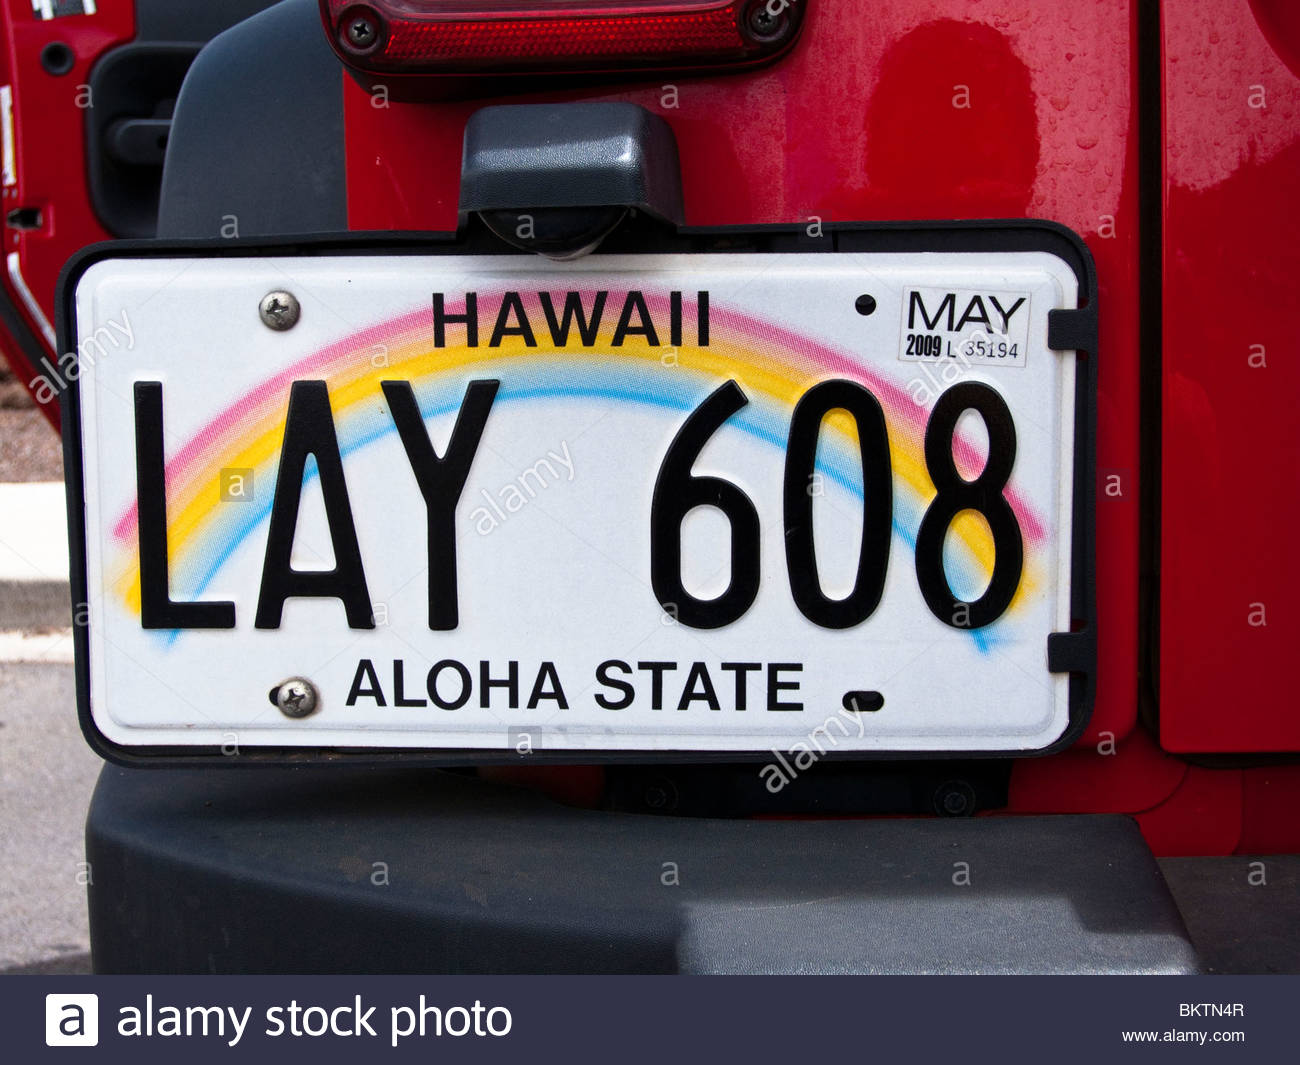 Hawaiian Lay License Plate, Lahaina, Maui, Hawaii, USA Stock Photo ...